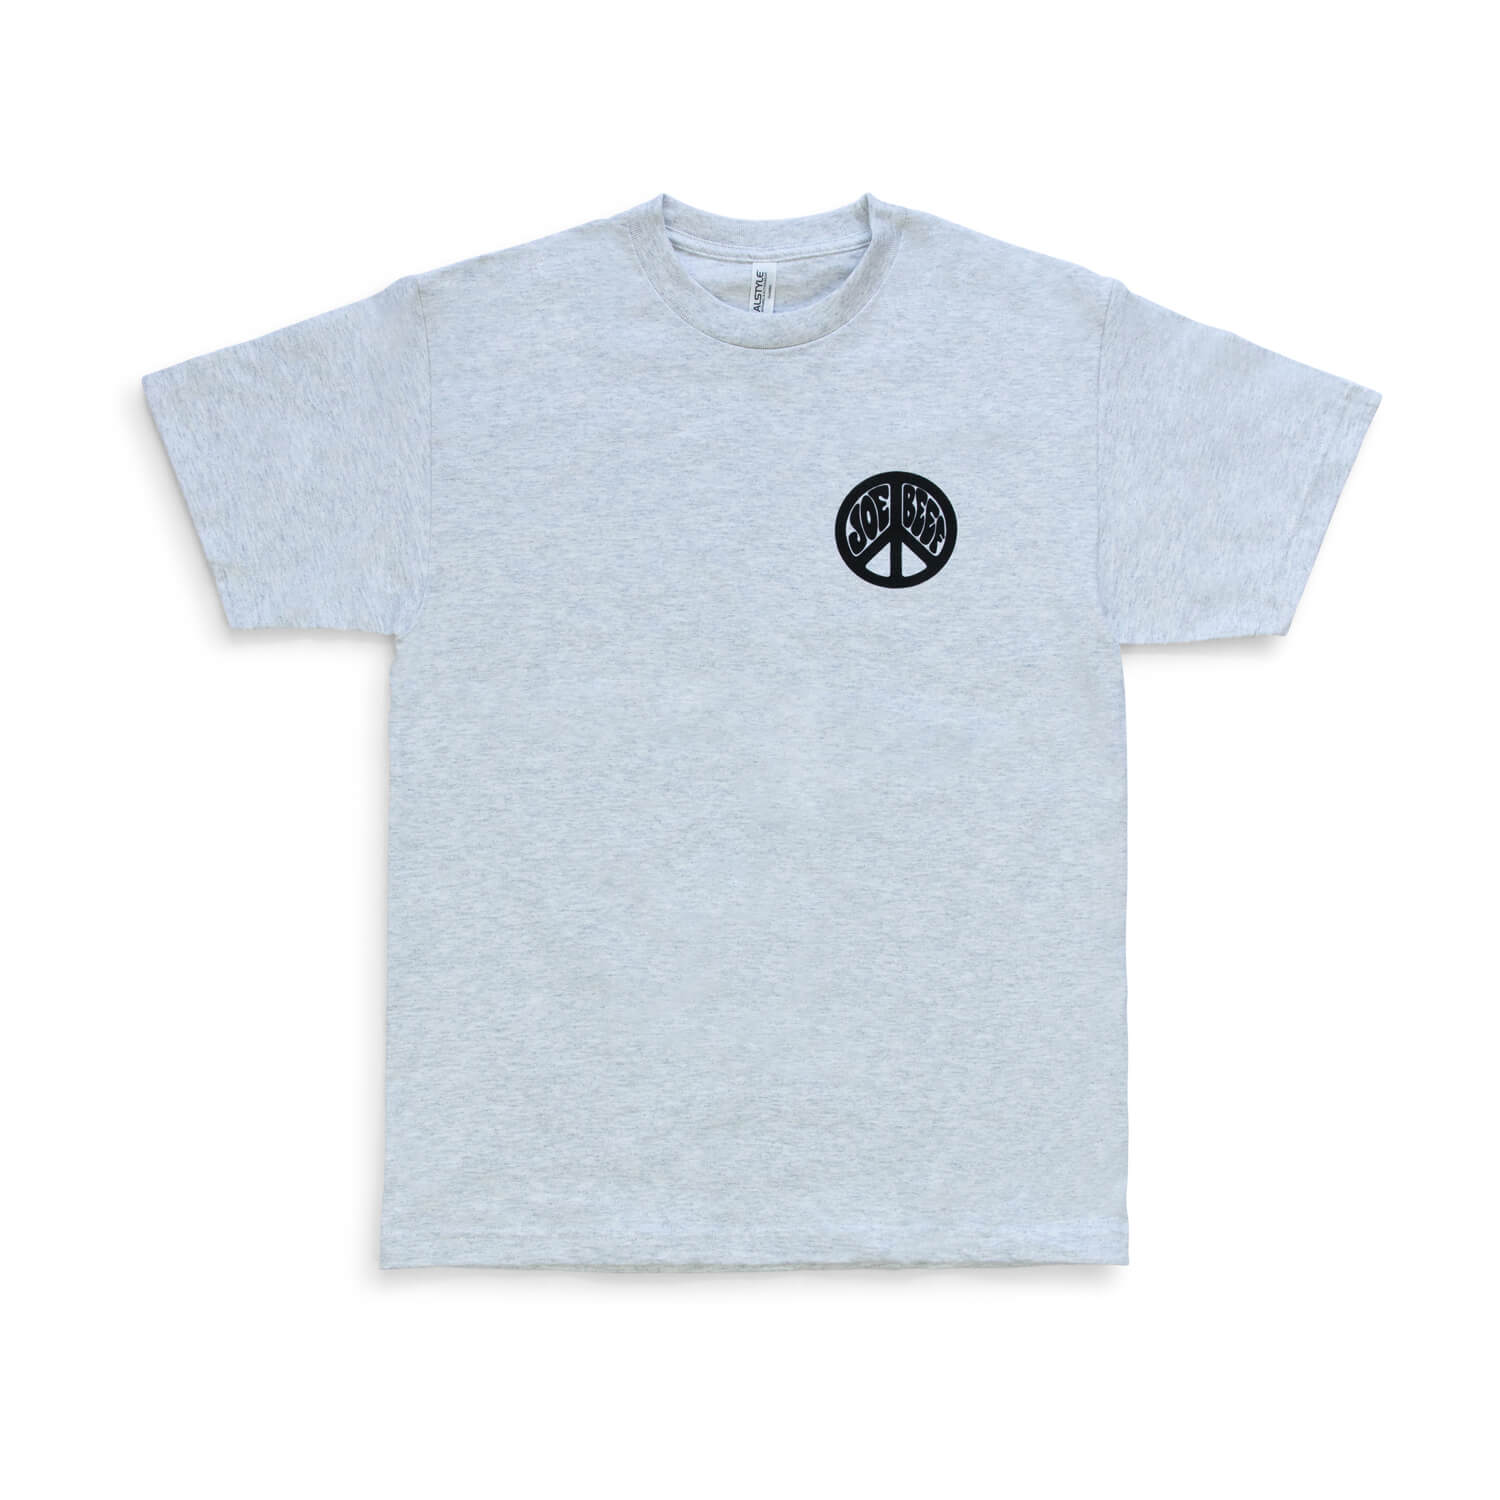 Joe Beef Hippie T-Shirt (Grey)